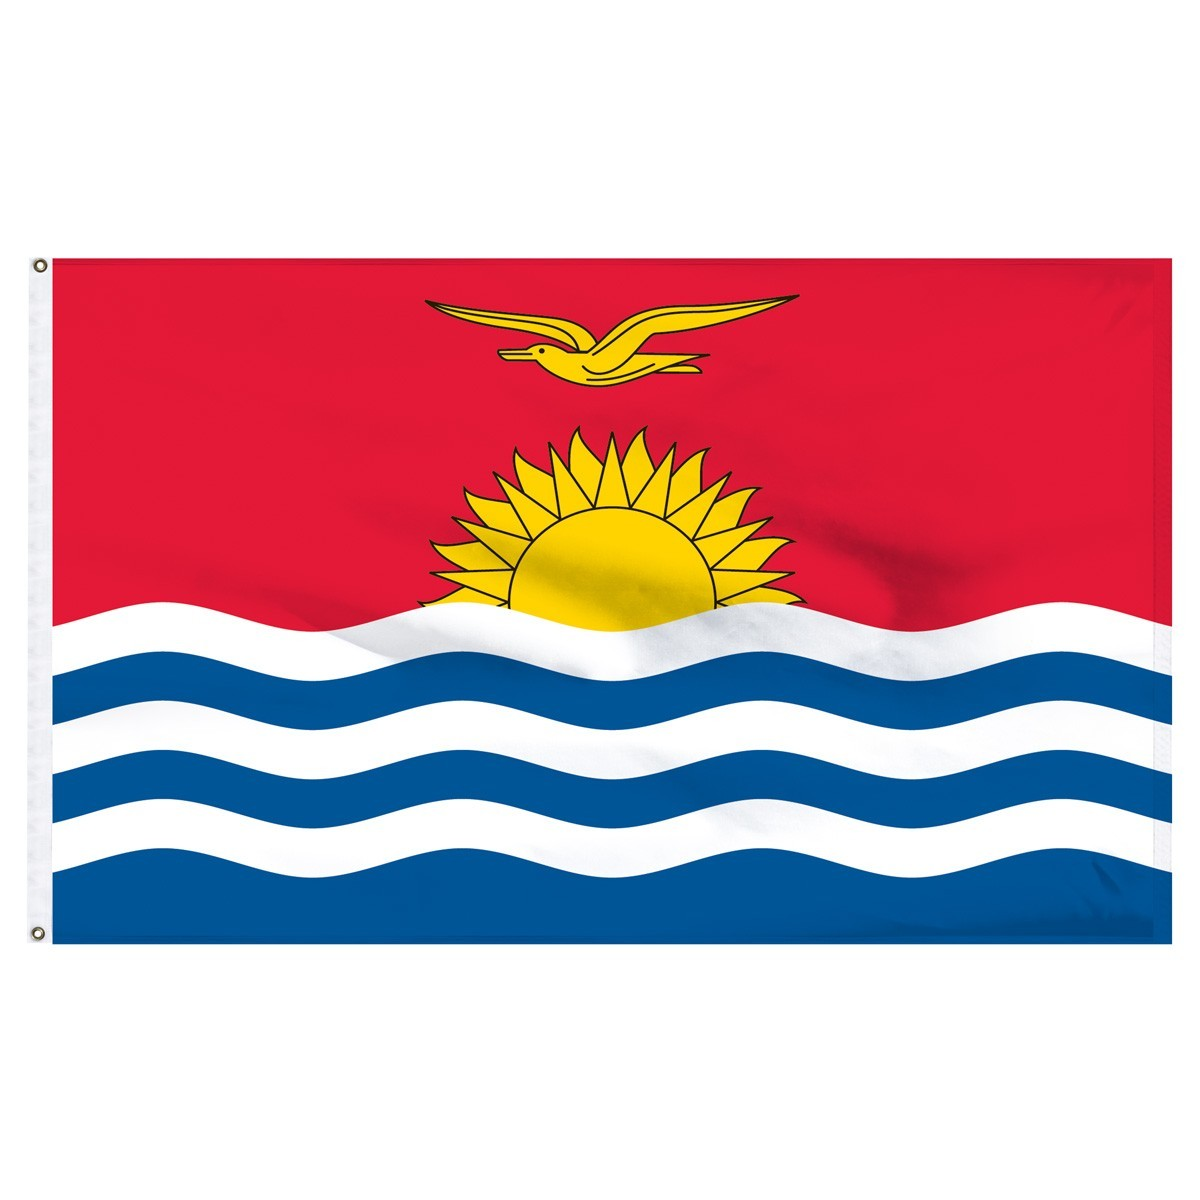 Kiribati 4' x 6' Outdoor Nylon Flag